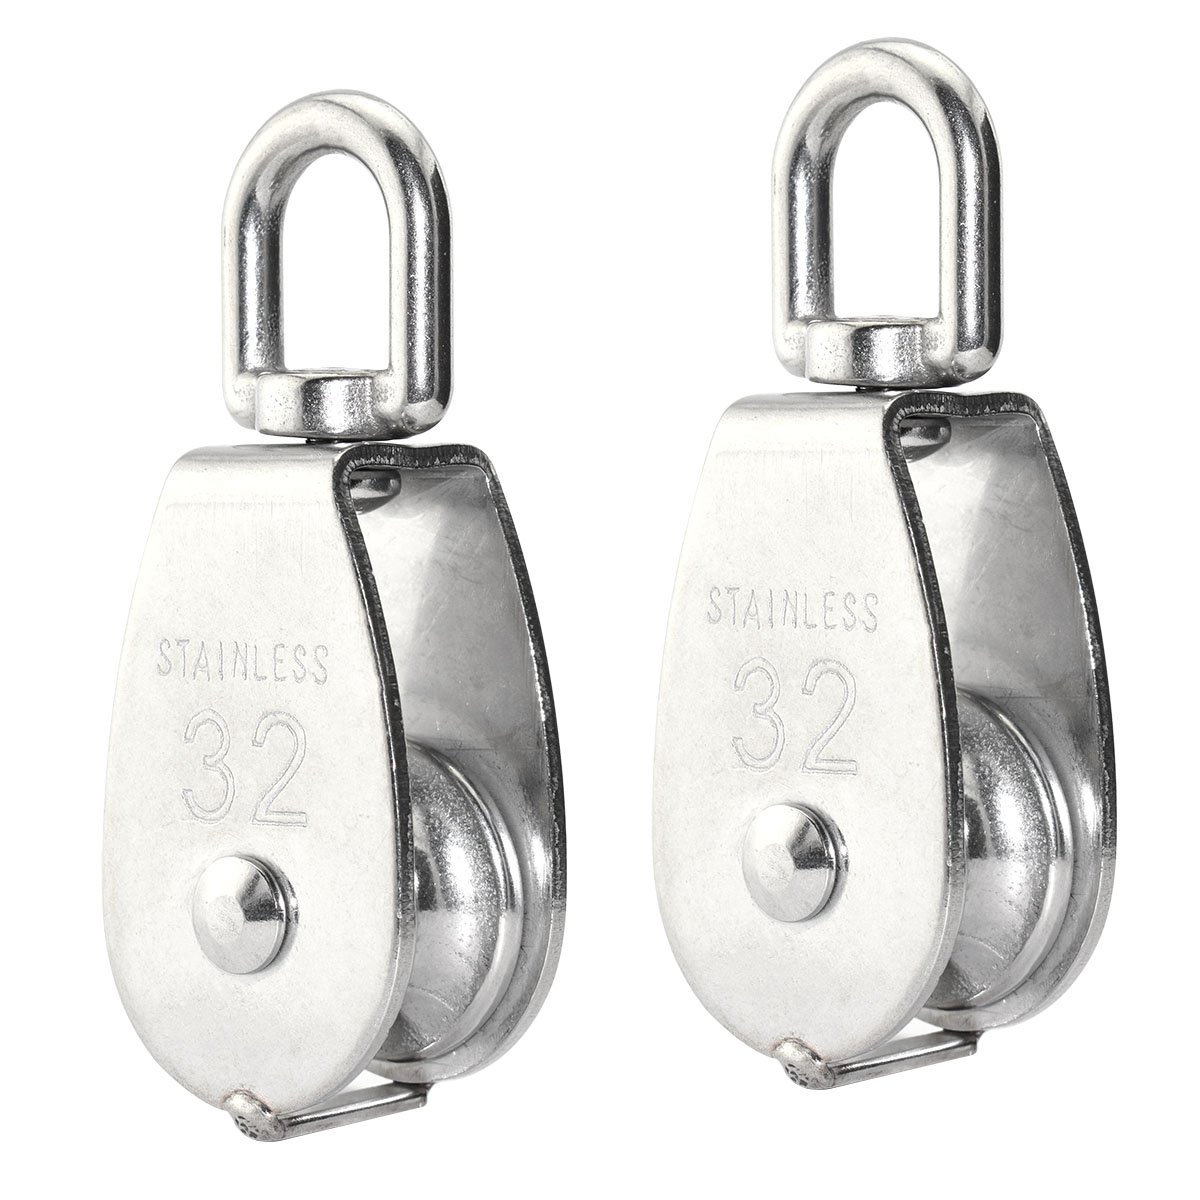 Lind Kitchen 2PCS Lifting Single Pulley Stainless Steel Heavy Duty Single Wheel Swivel Lifting Rope Pulley Block M32